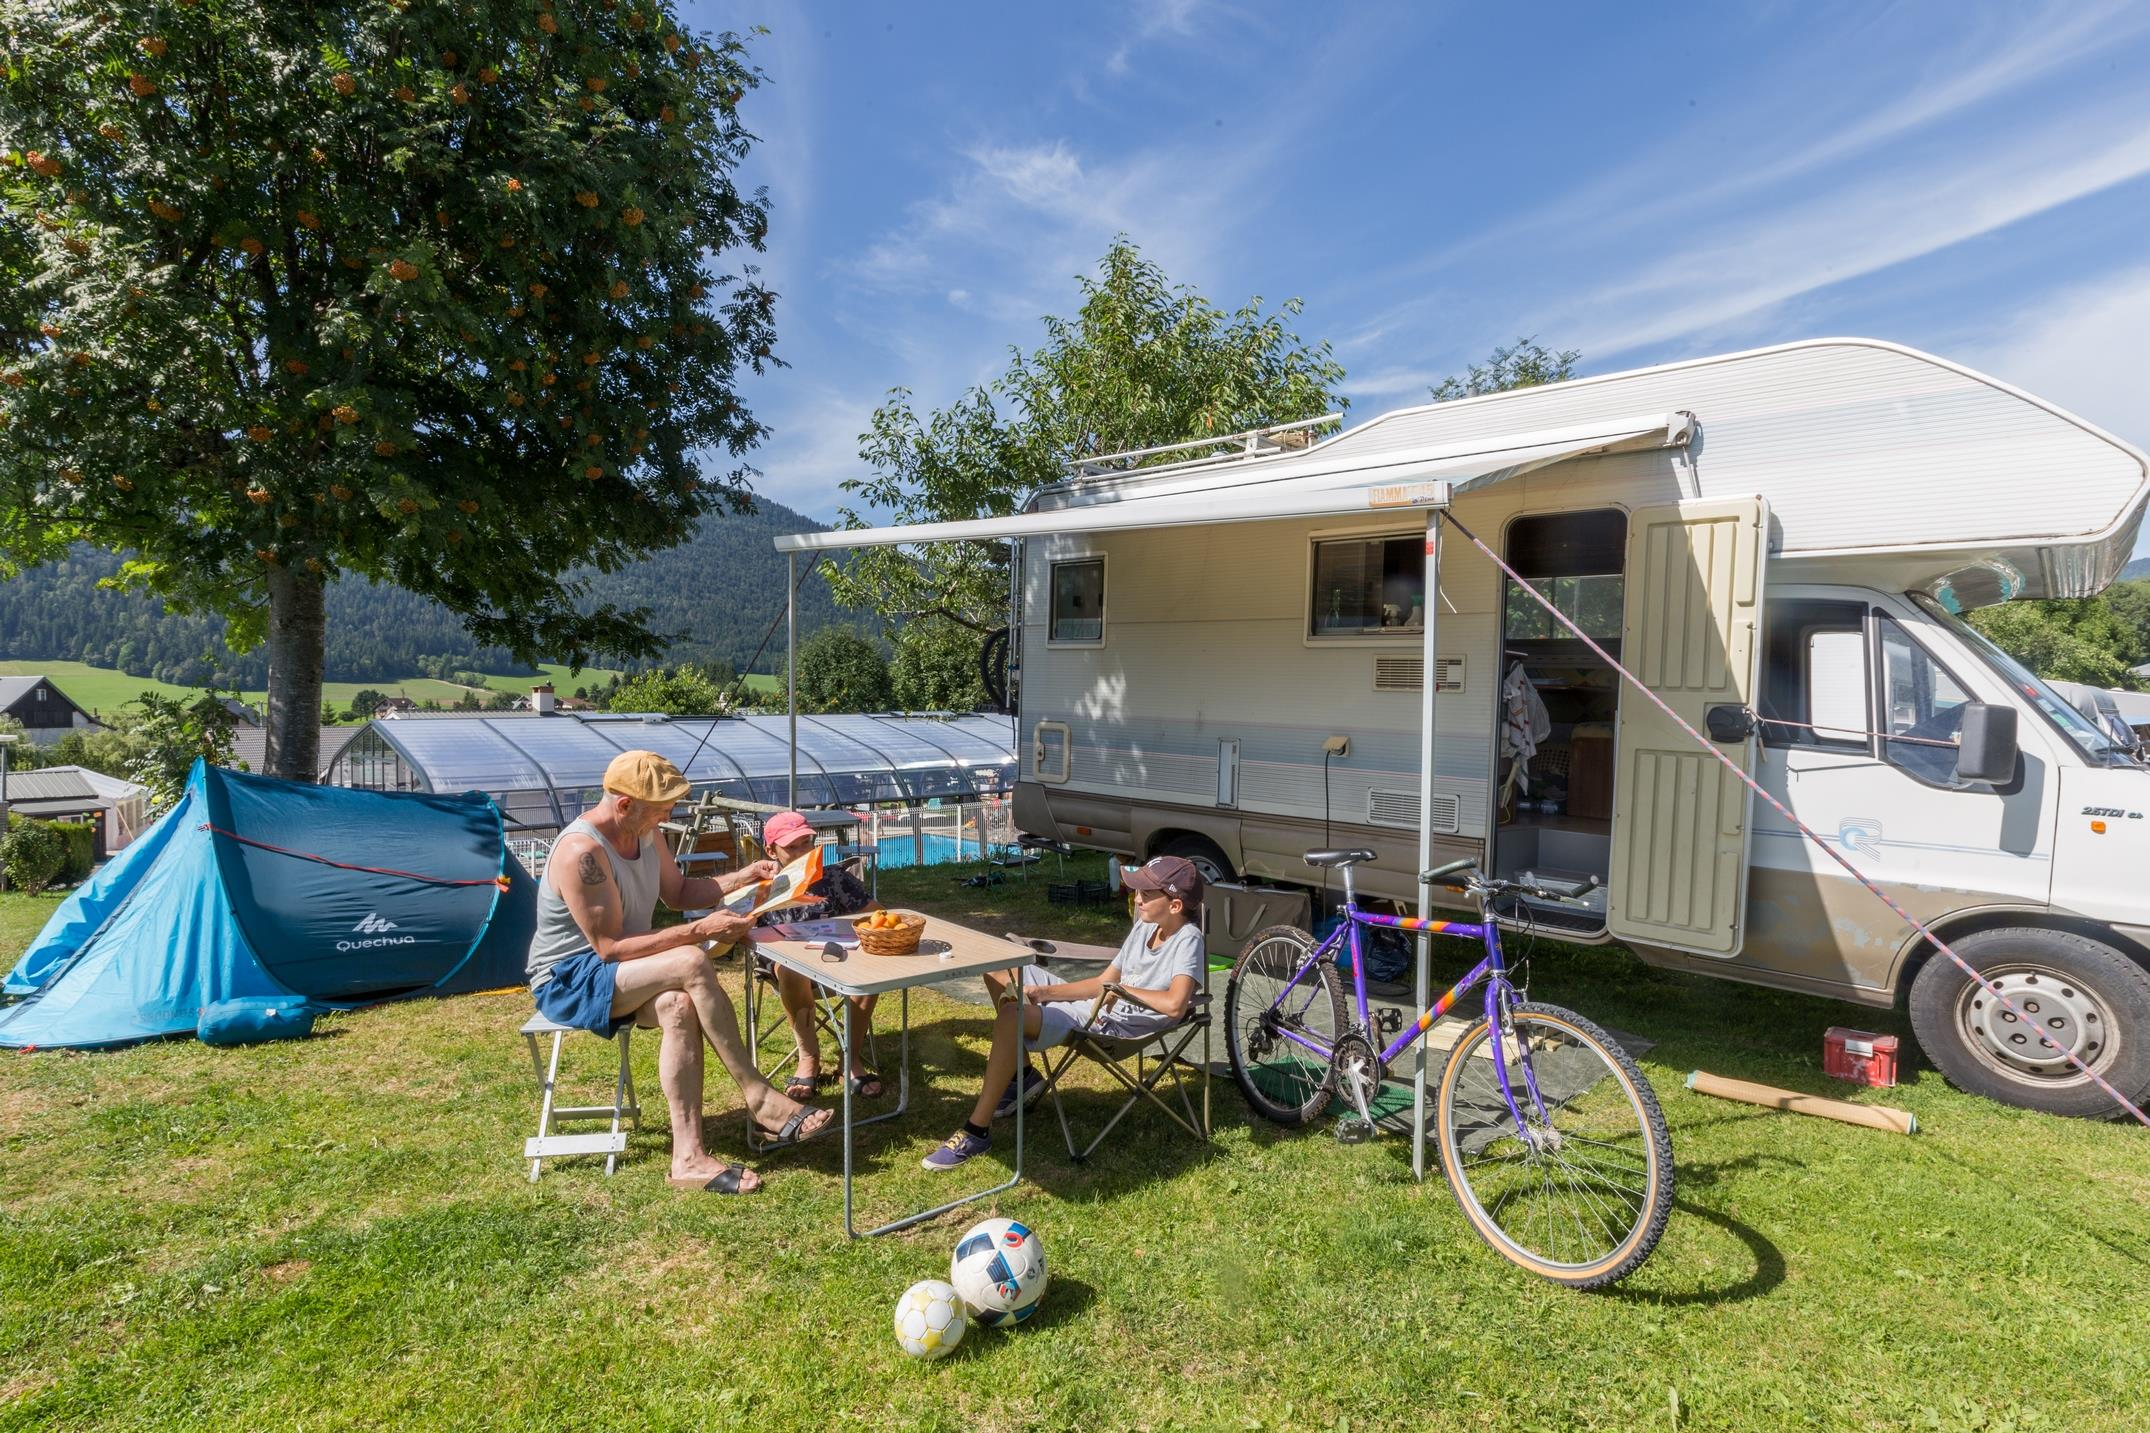 Pitch - Pitch : 1 Tent, Caravan Or Motorhome / 1 Car - Camping Le Vercors